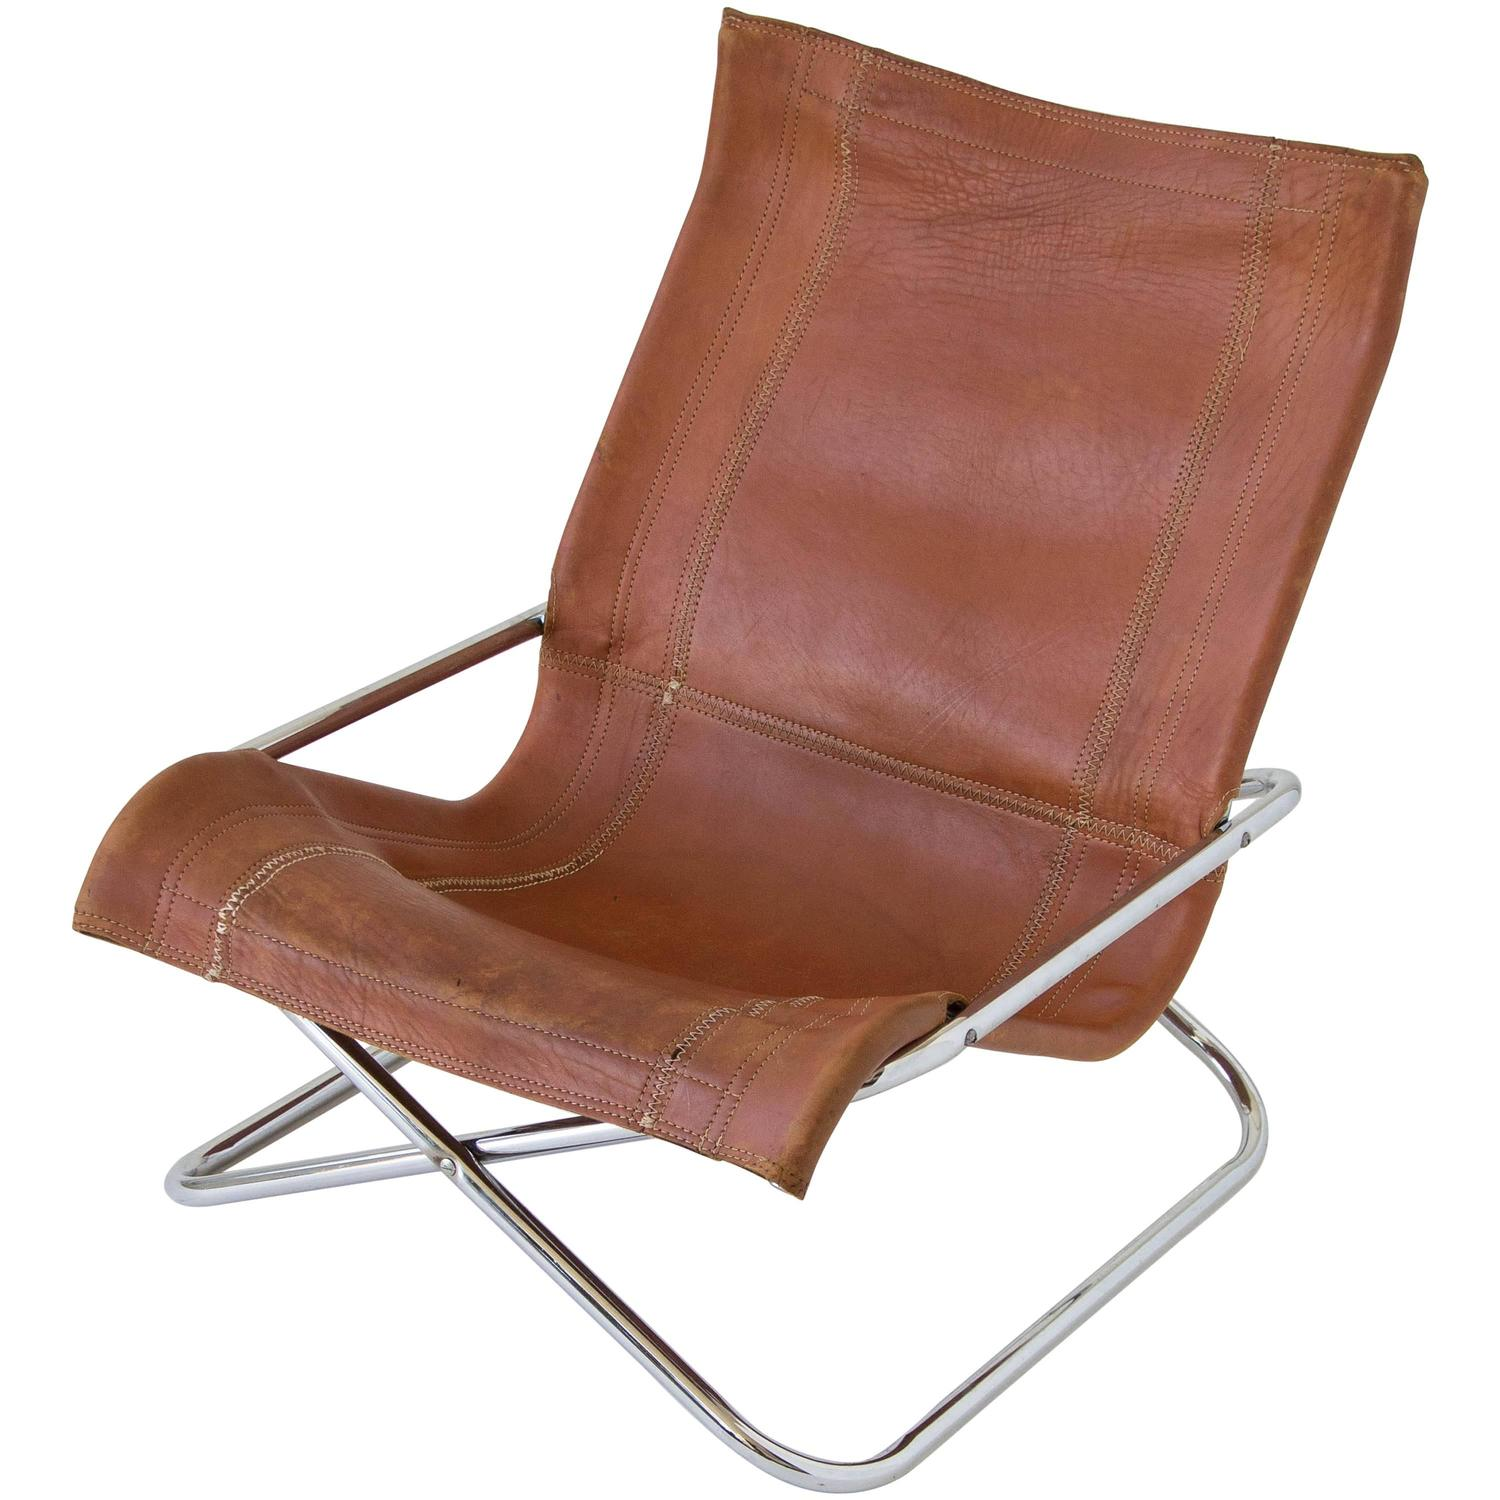 sling folding chairs plastic chair covers bunnings sueki uchida leather for sale at 1stdibs